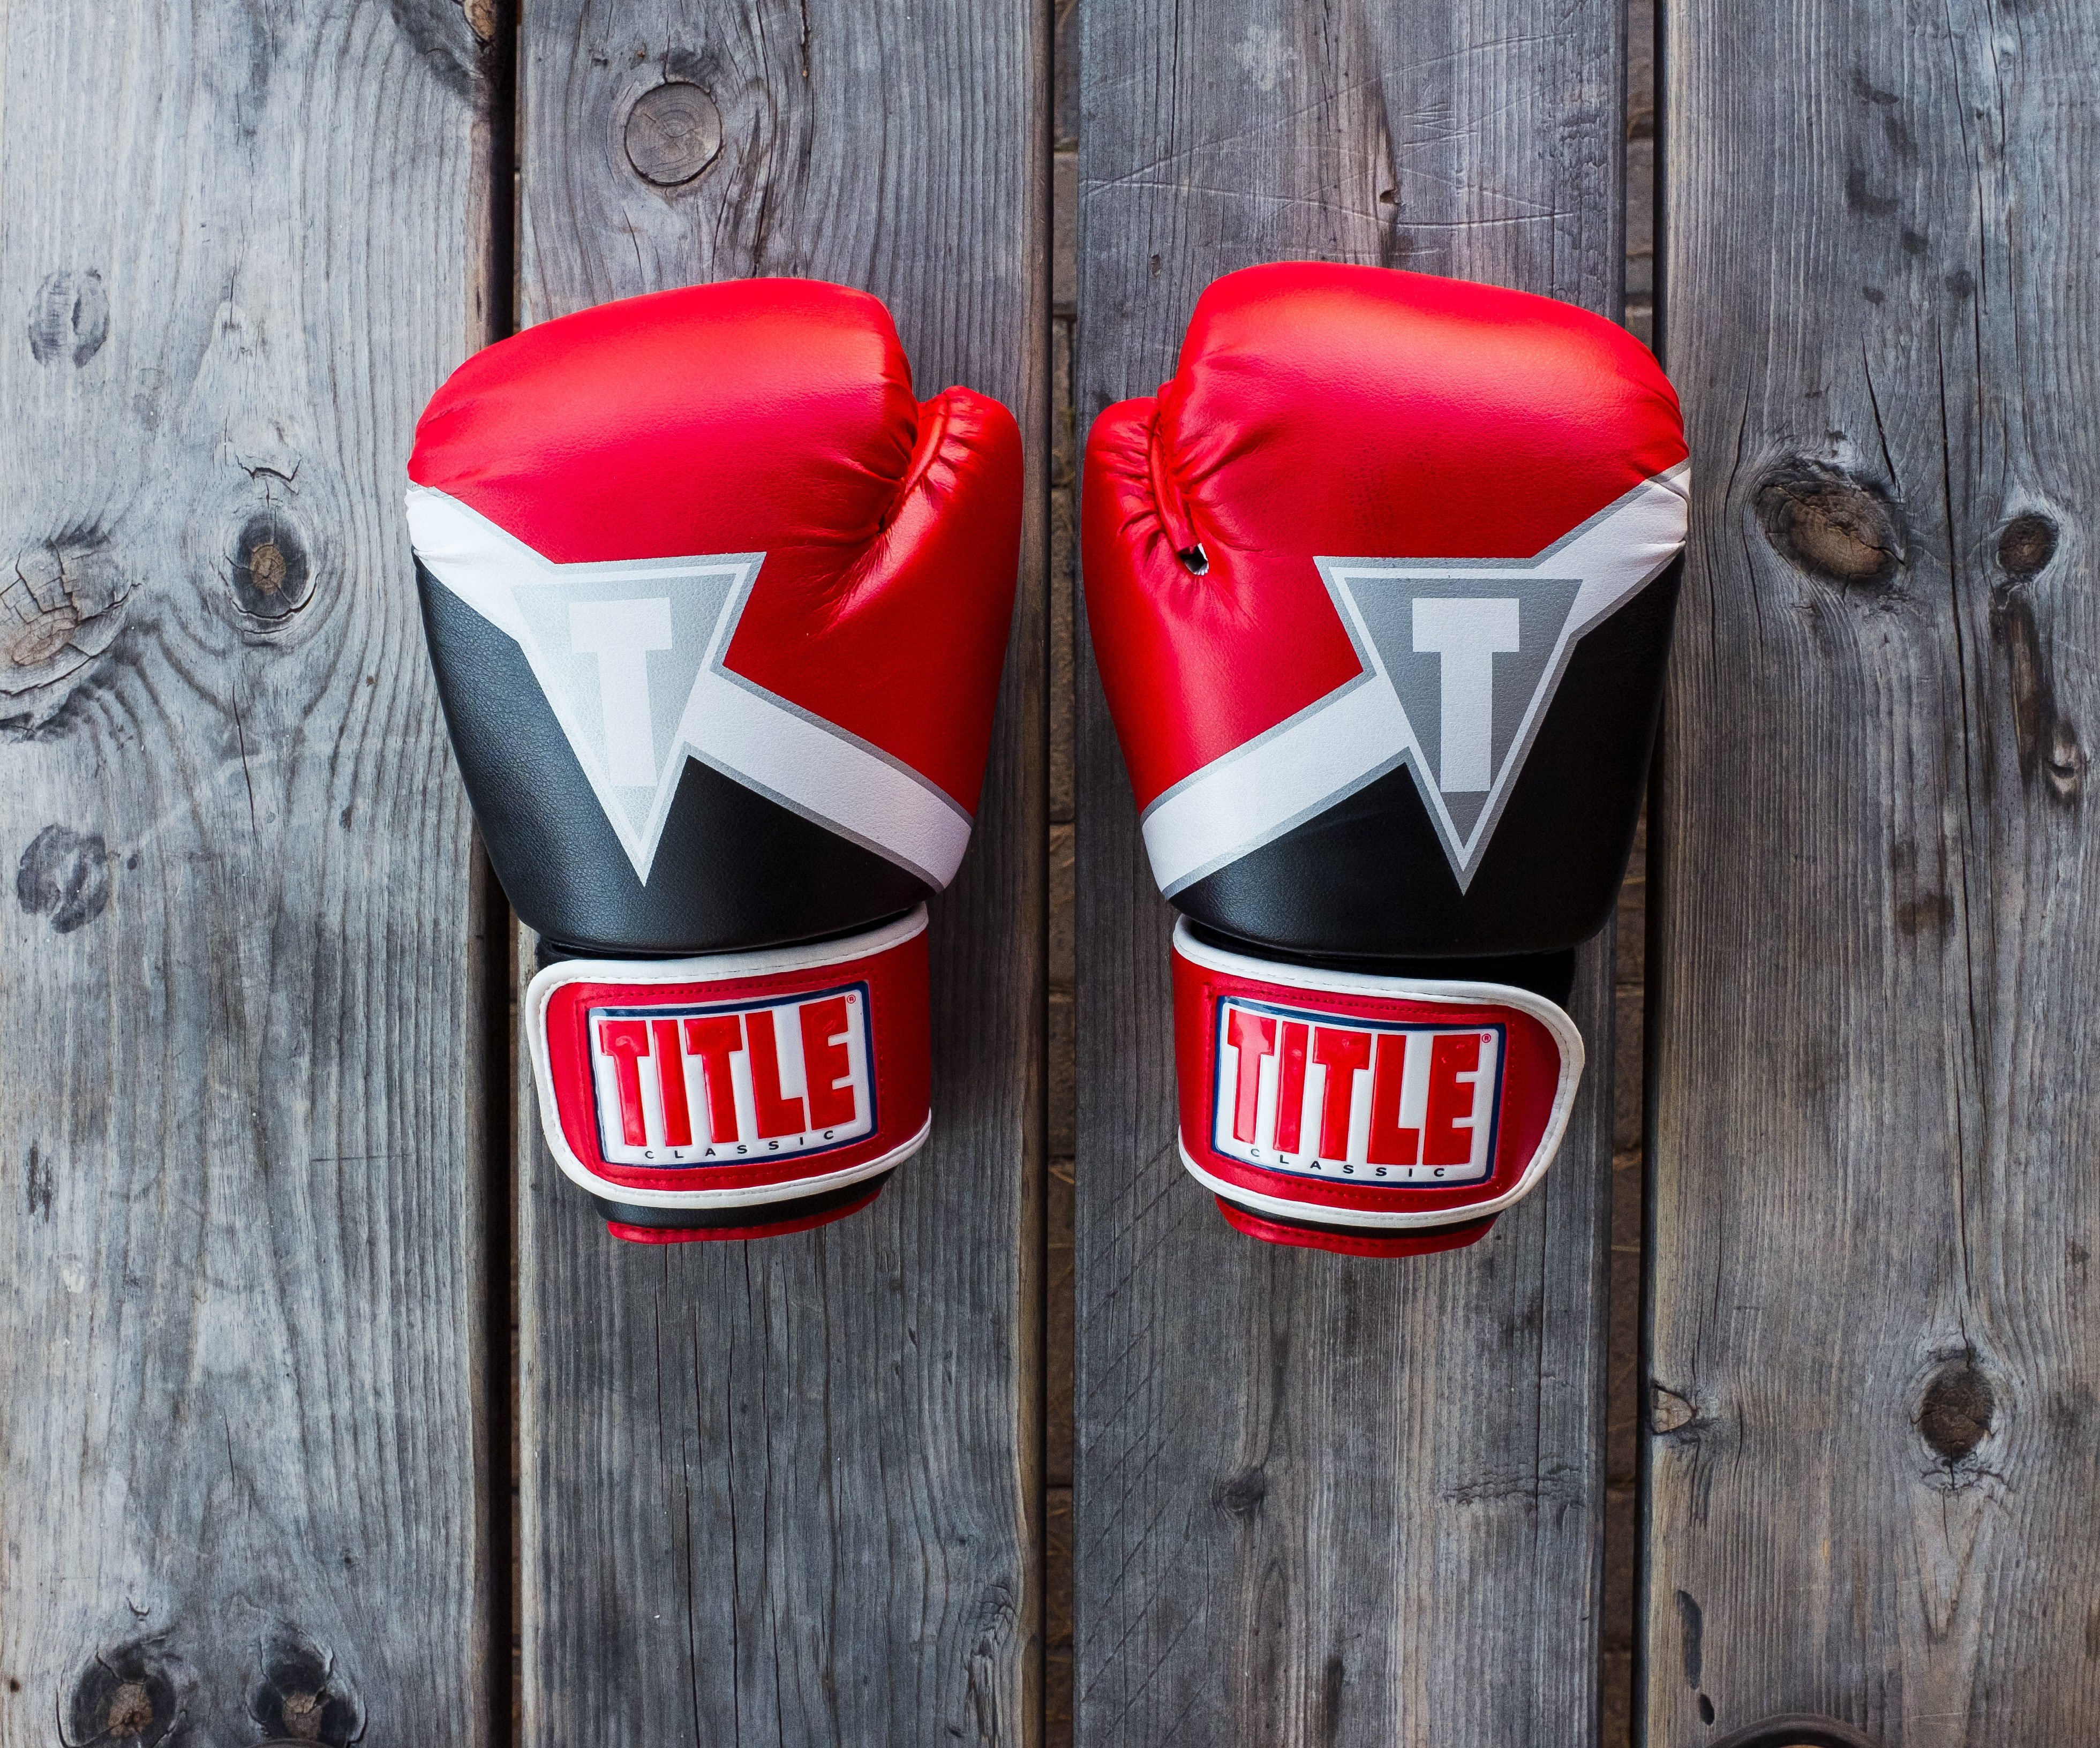 Pair of boxing gloves | Source: Unsplash / NeONBRAND